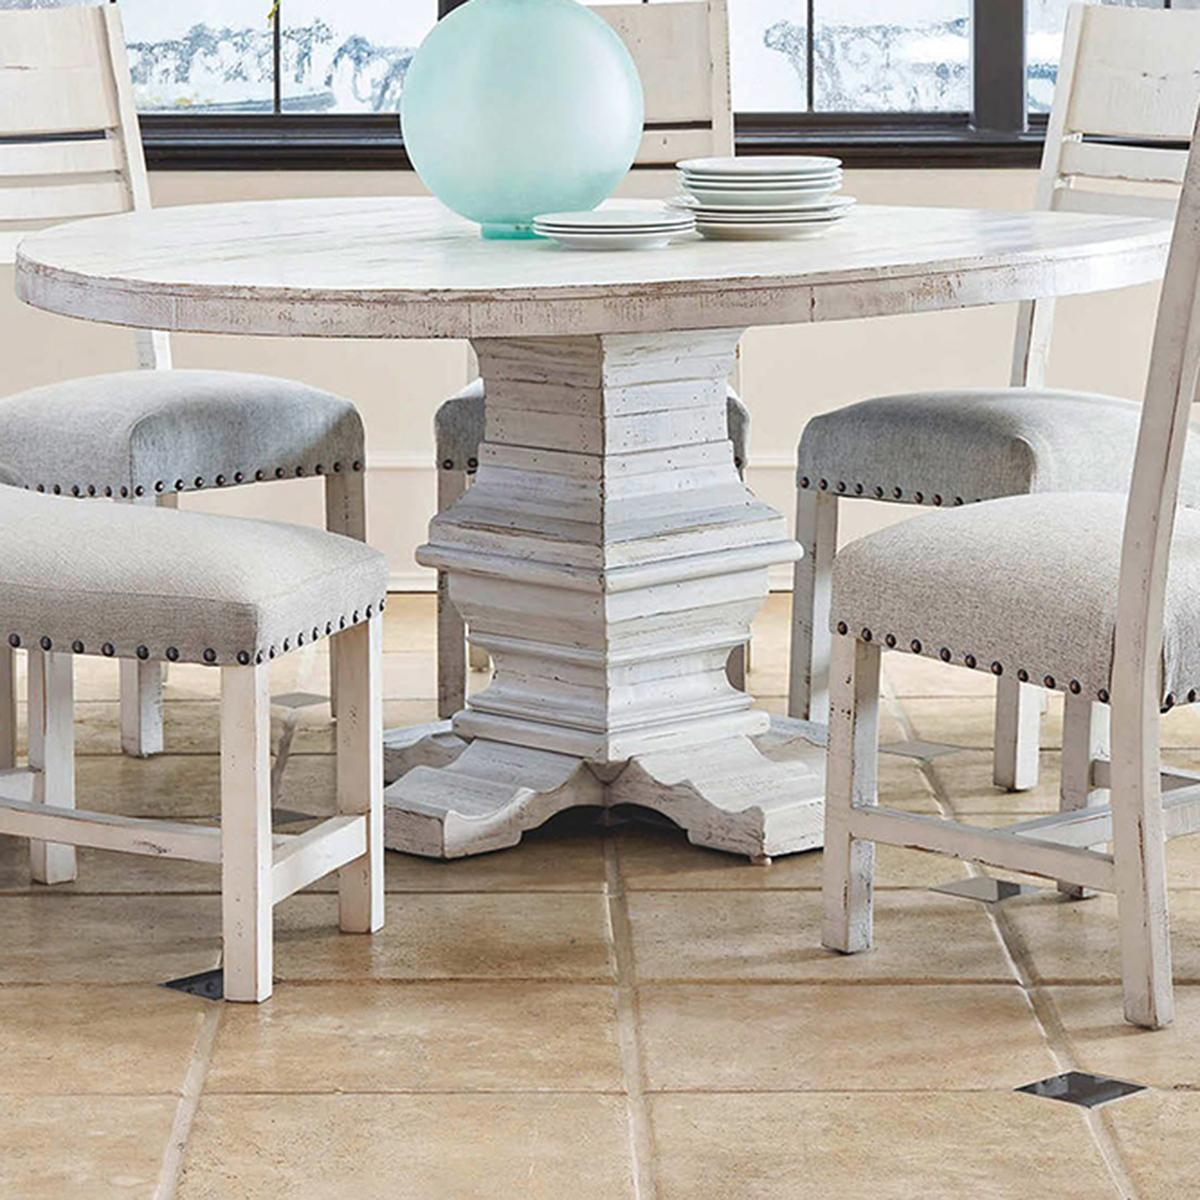 5 Dining Table Trends For 2020 That Are Here To Stay Nashco Furniture Mattress Outlet